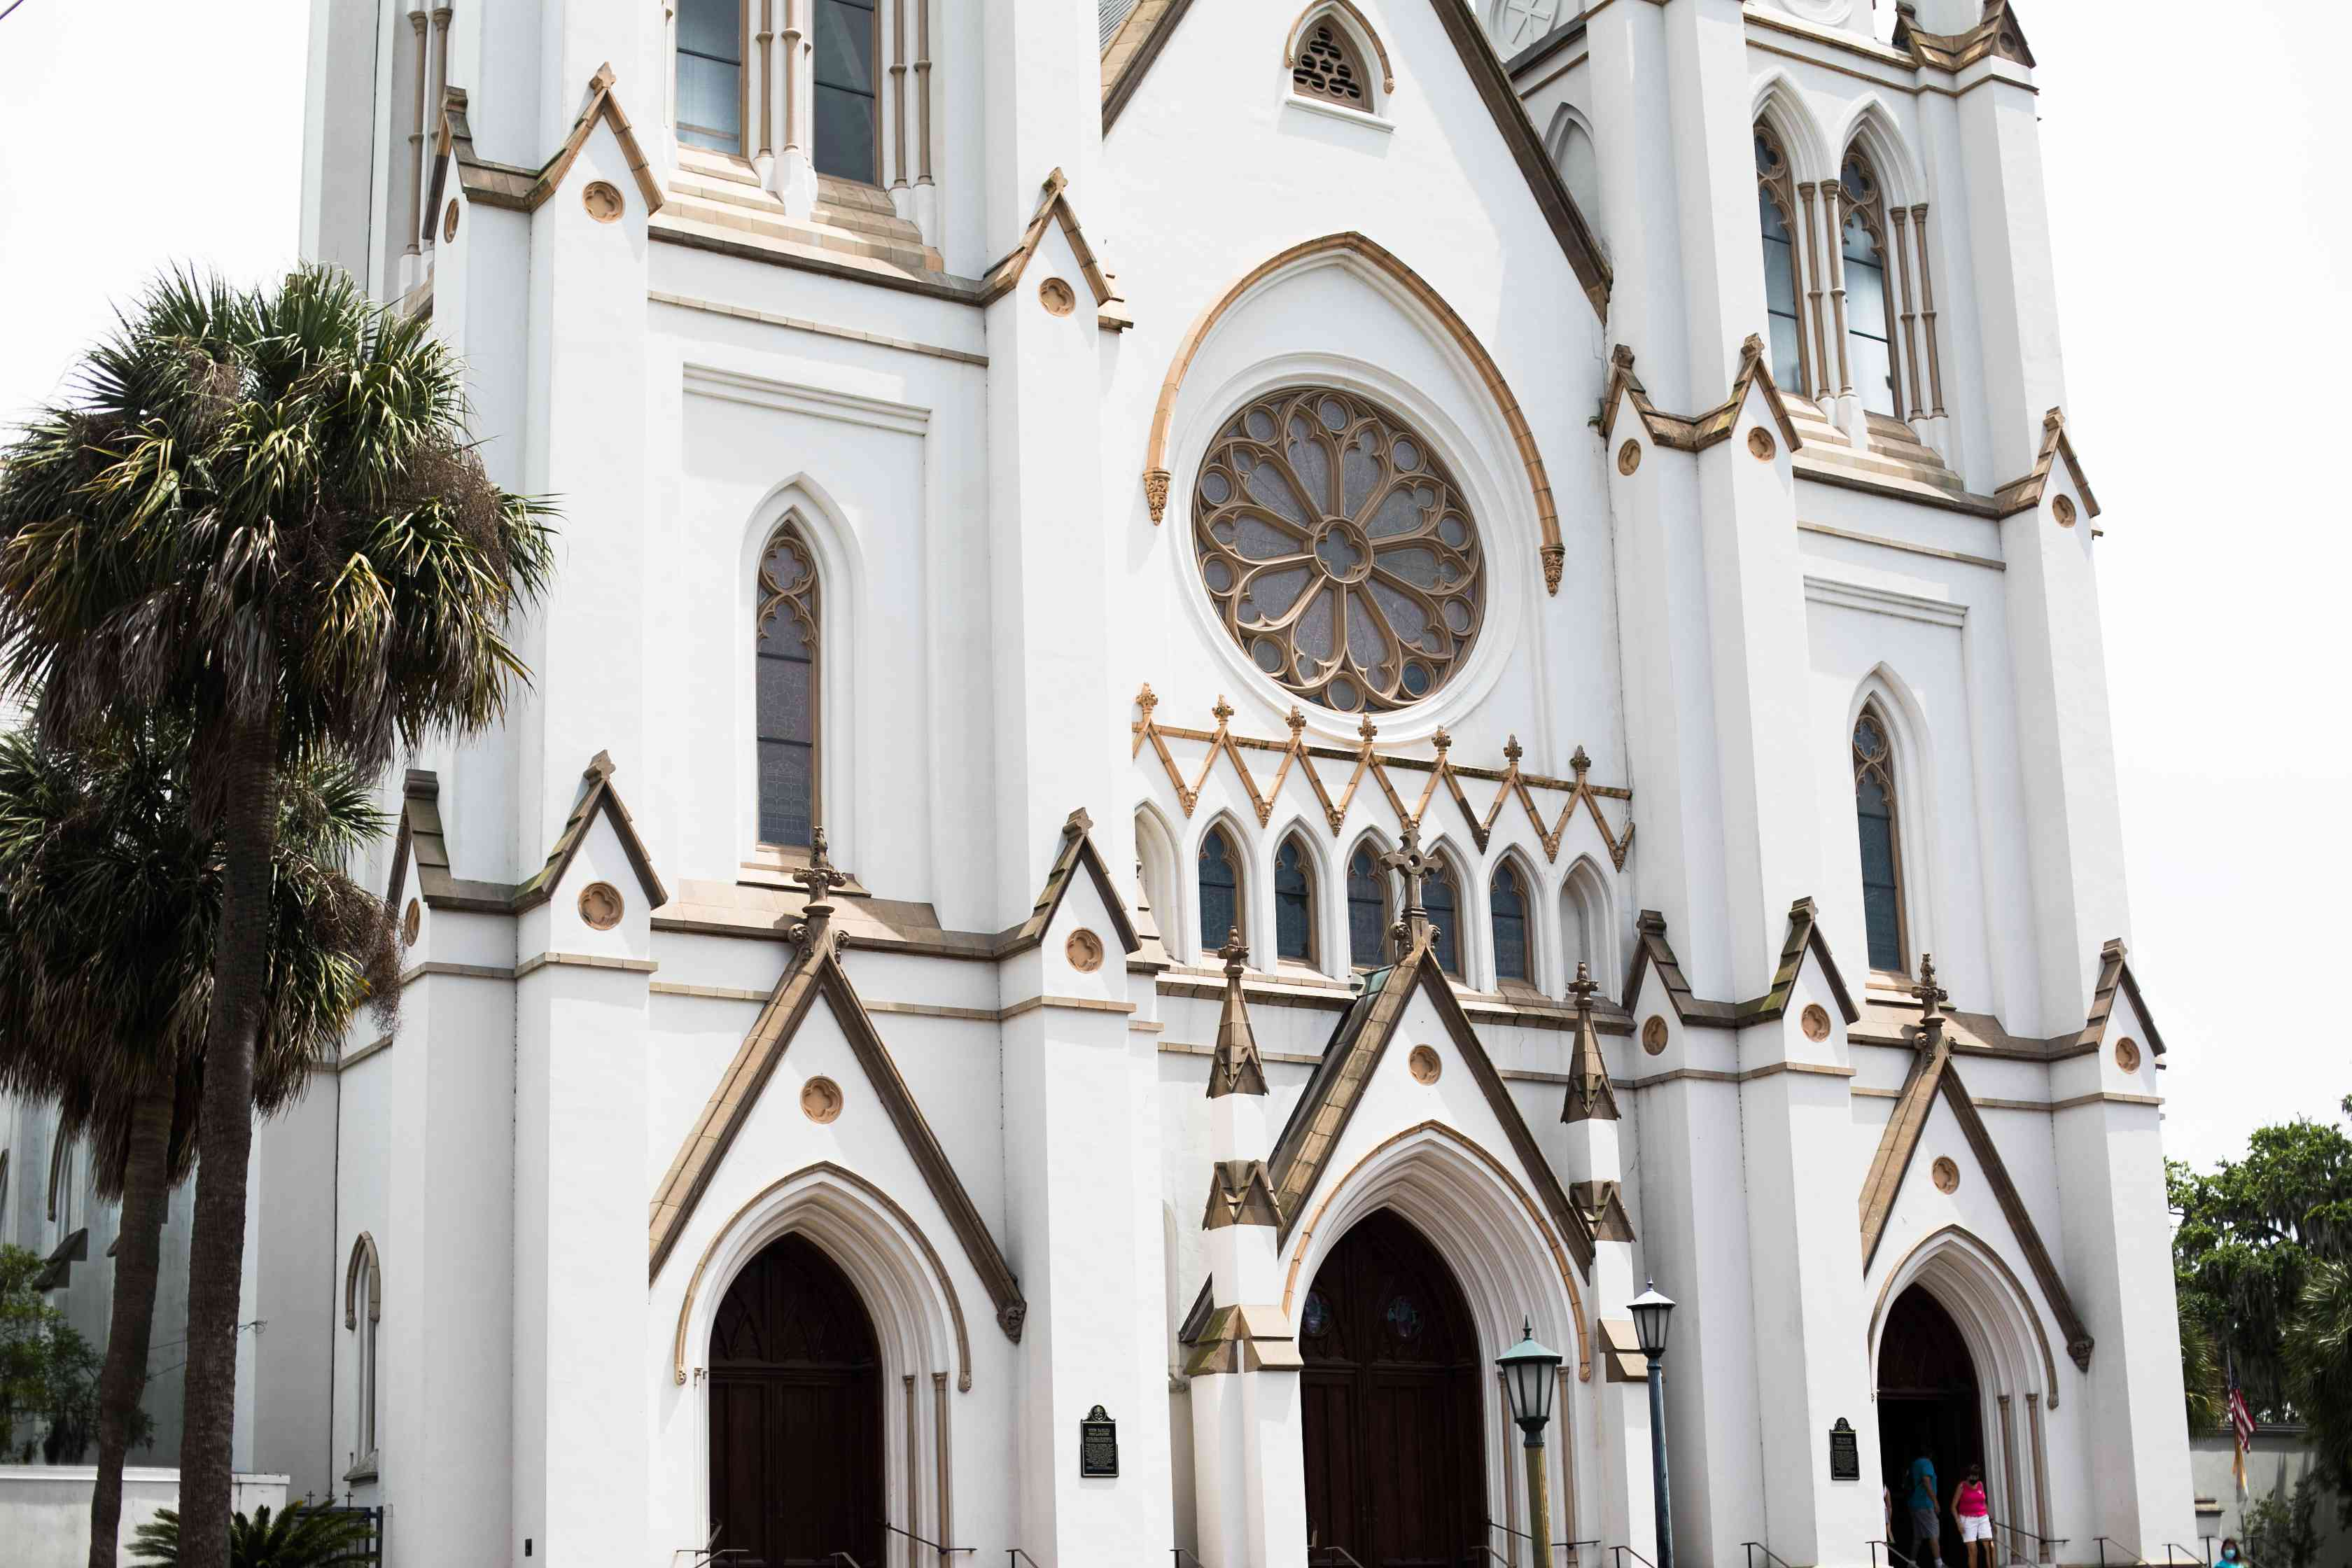 Cathedral of St. John in Savannah